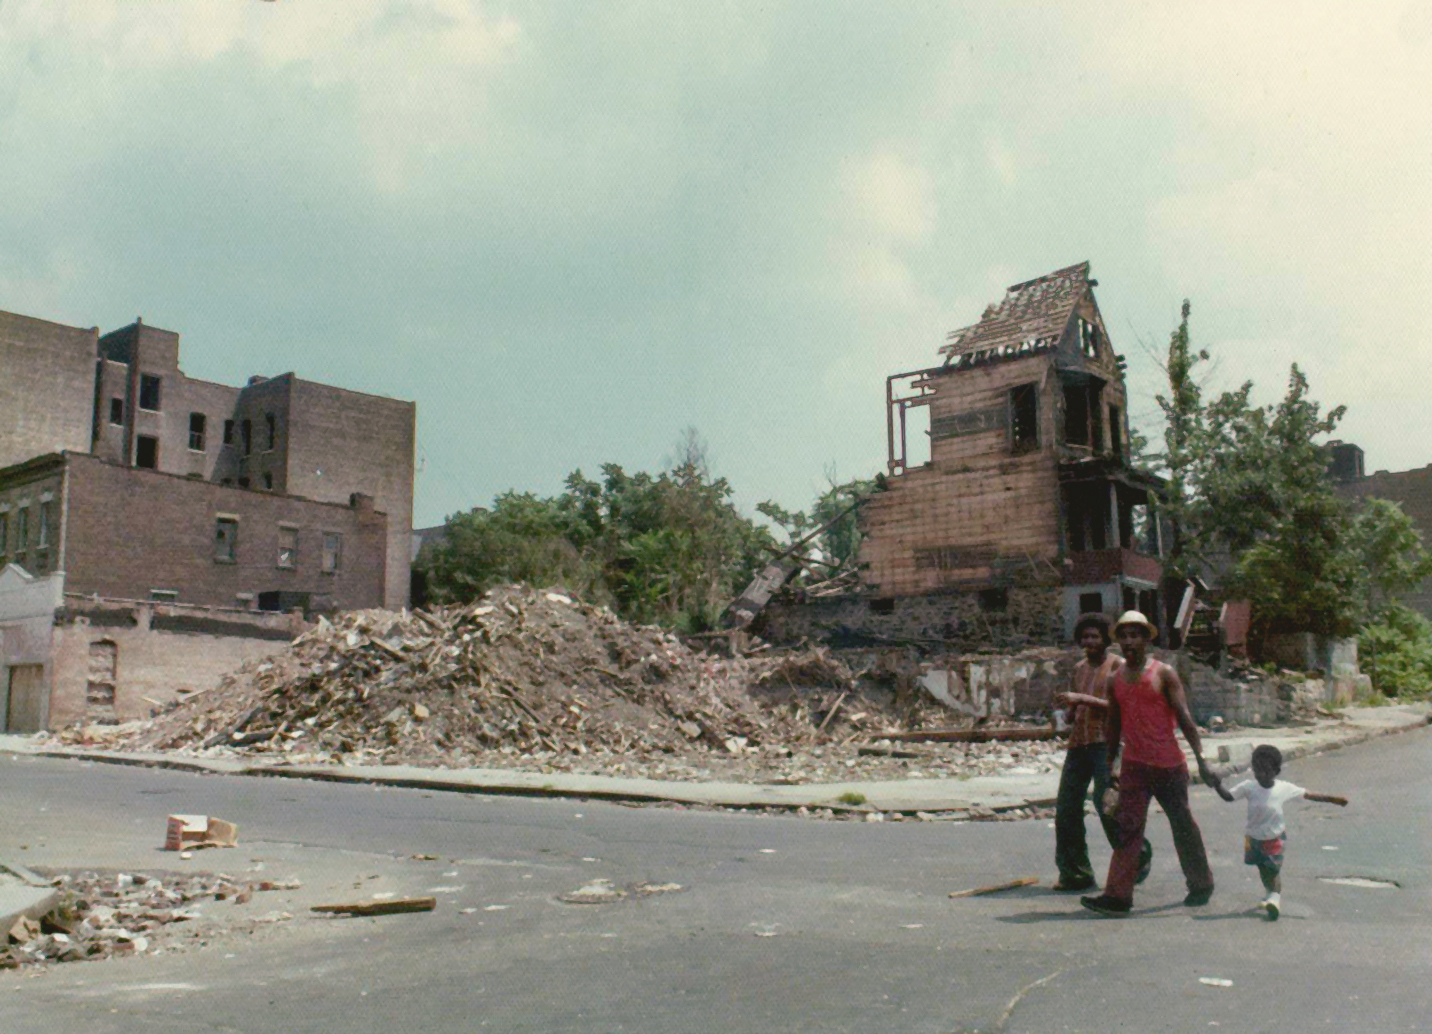 REVIEW: 'Decade of Fire' Is a Personal Look at the Bronx's Burning Buildings of the 1970s